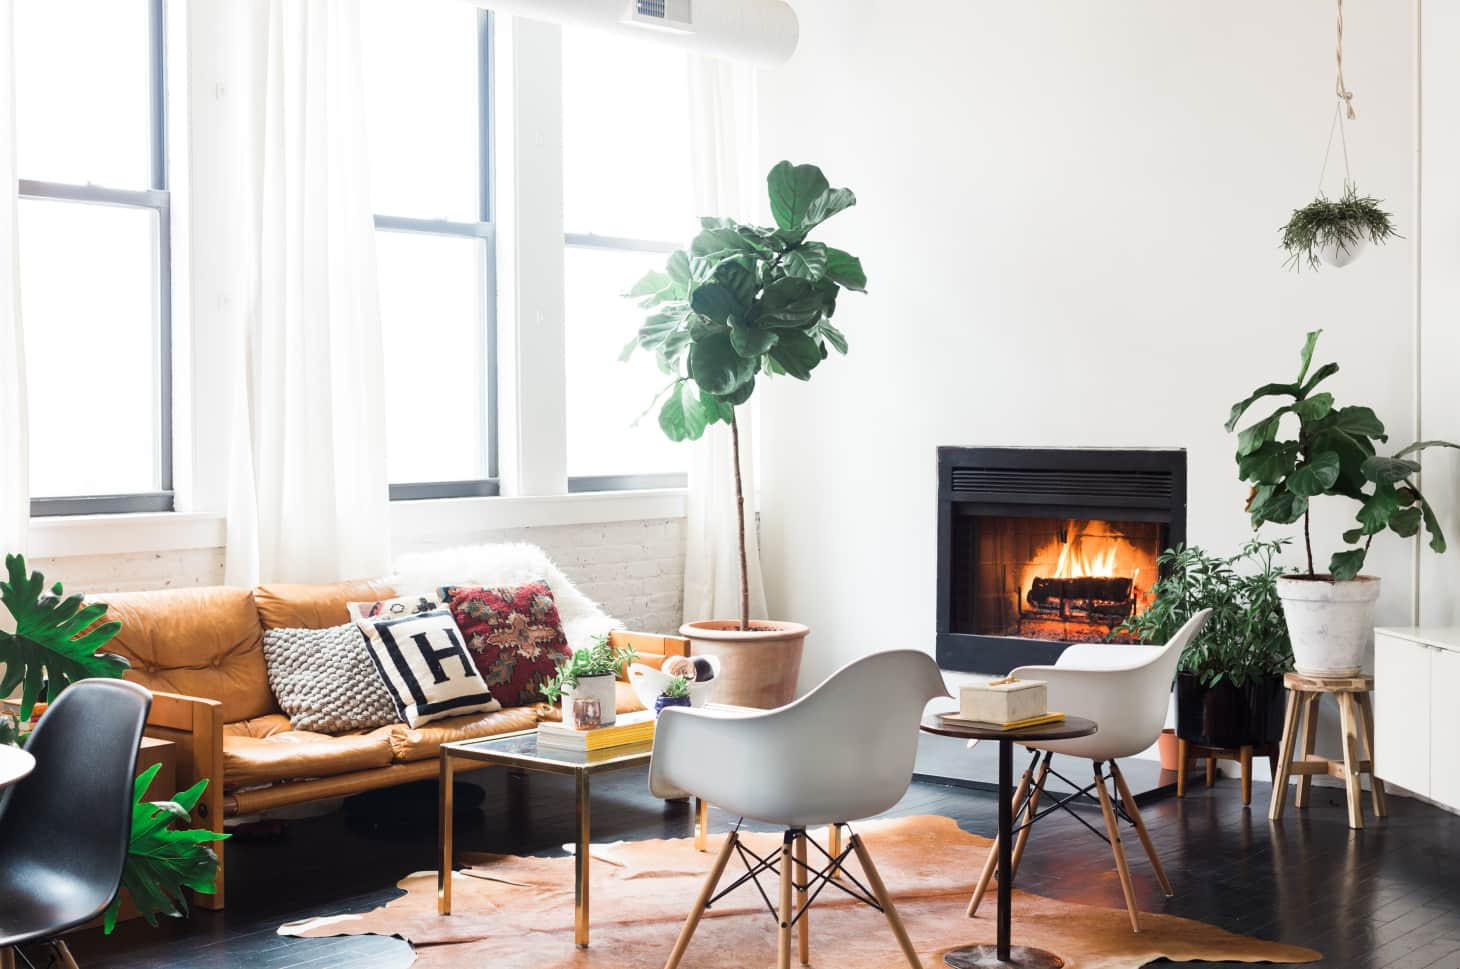 Where to Buy Affordable Furniture and Home Decor | Apartment Therapy